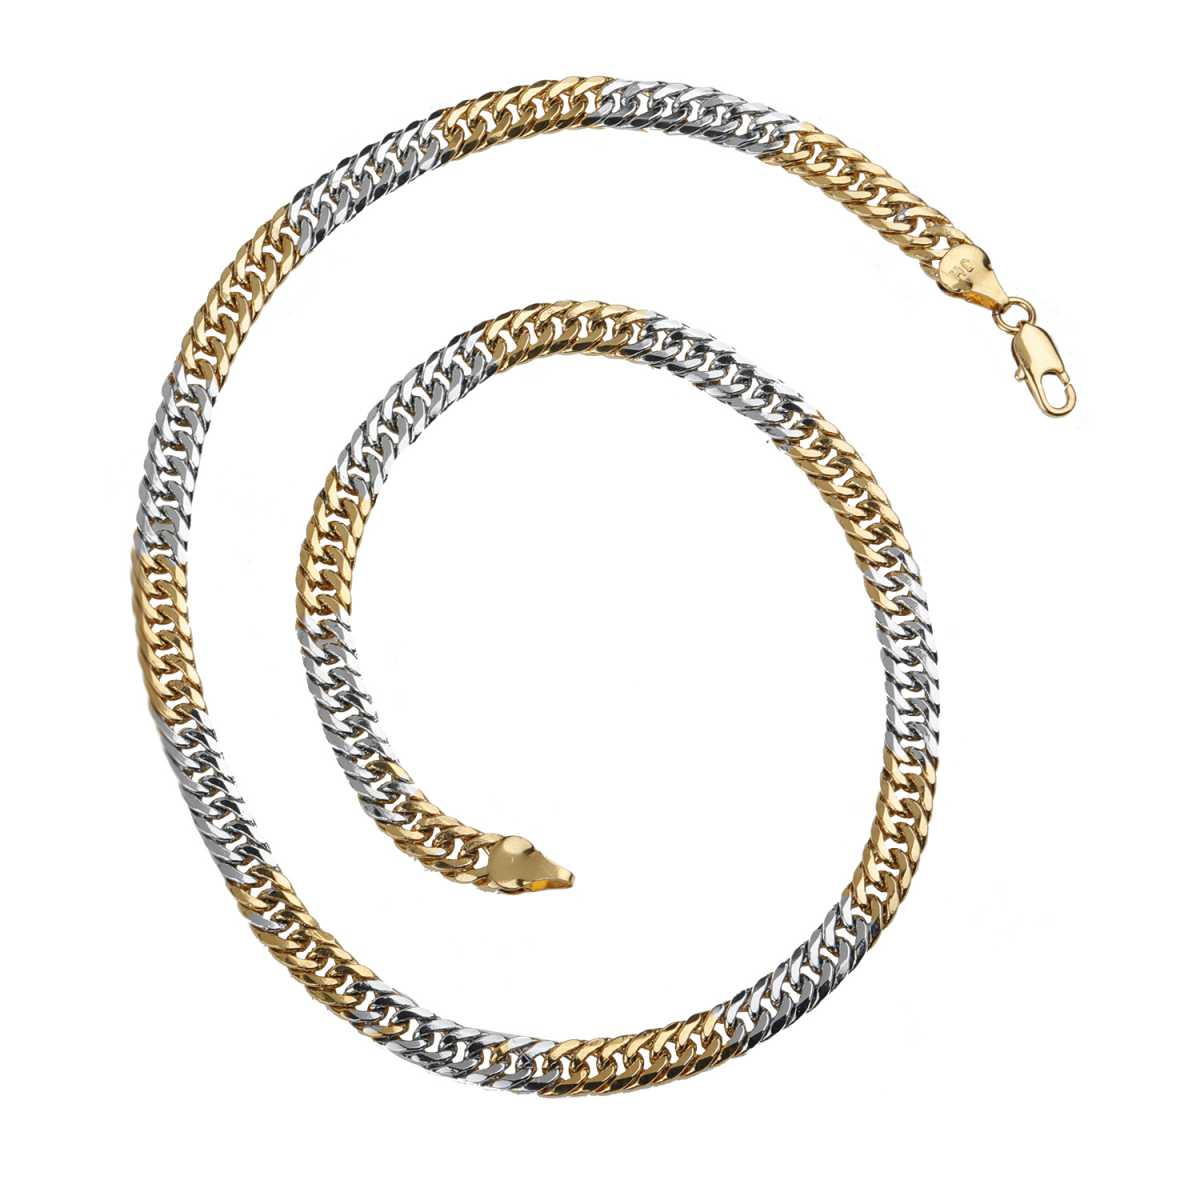 Silver Shine Charming  Gold Plated Stainless Steel Snake Style Chain 18 Inch Daily Wear Jewellry For Boys And Men